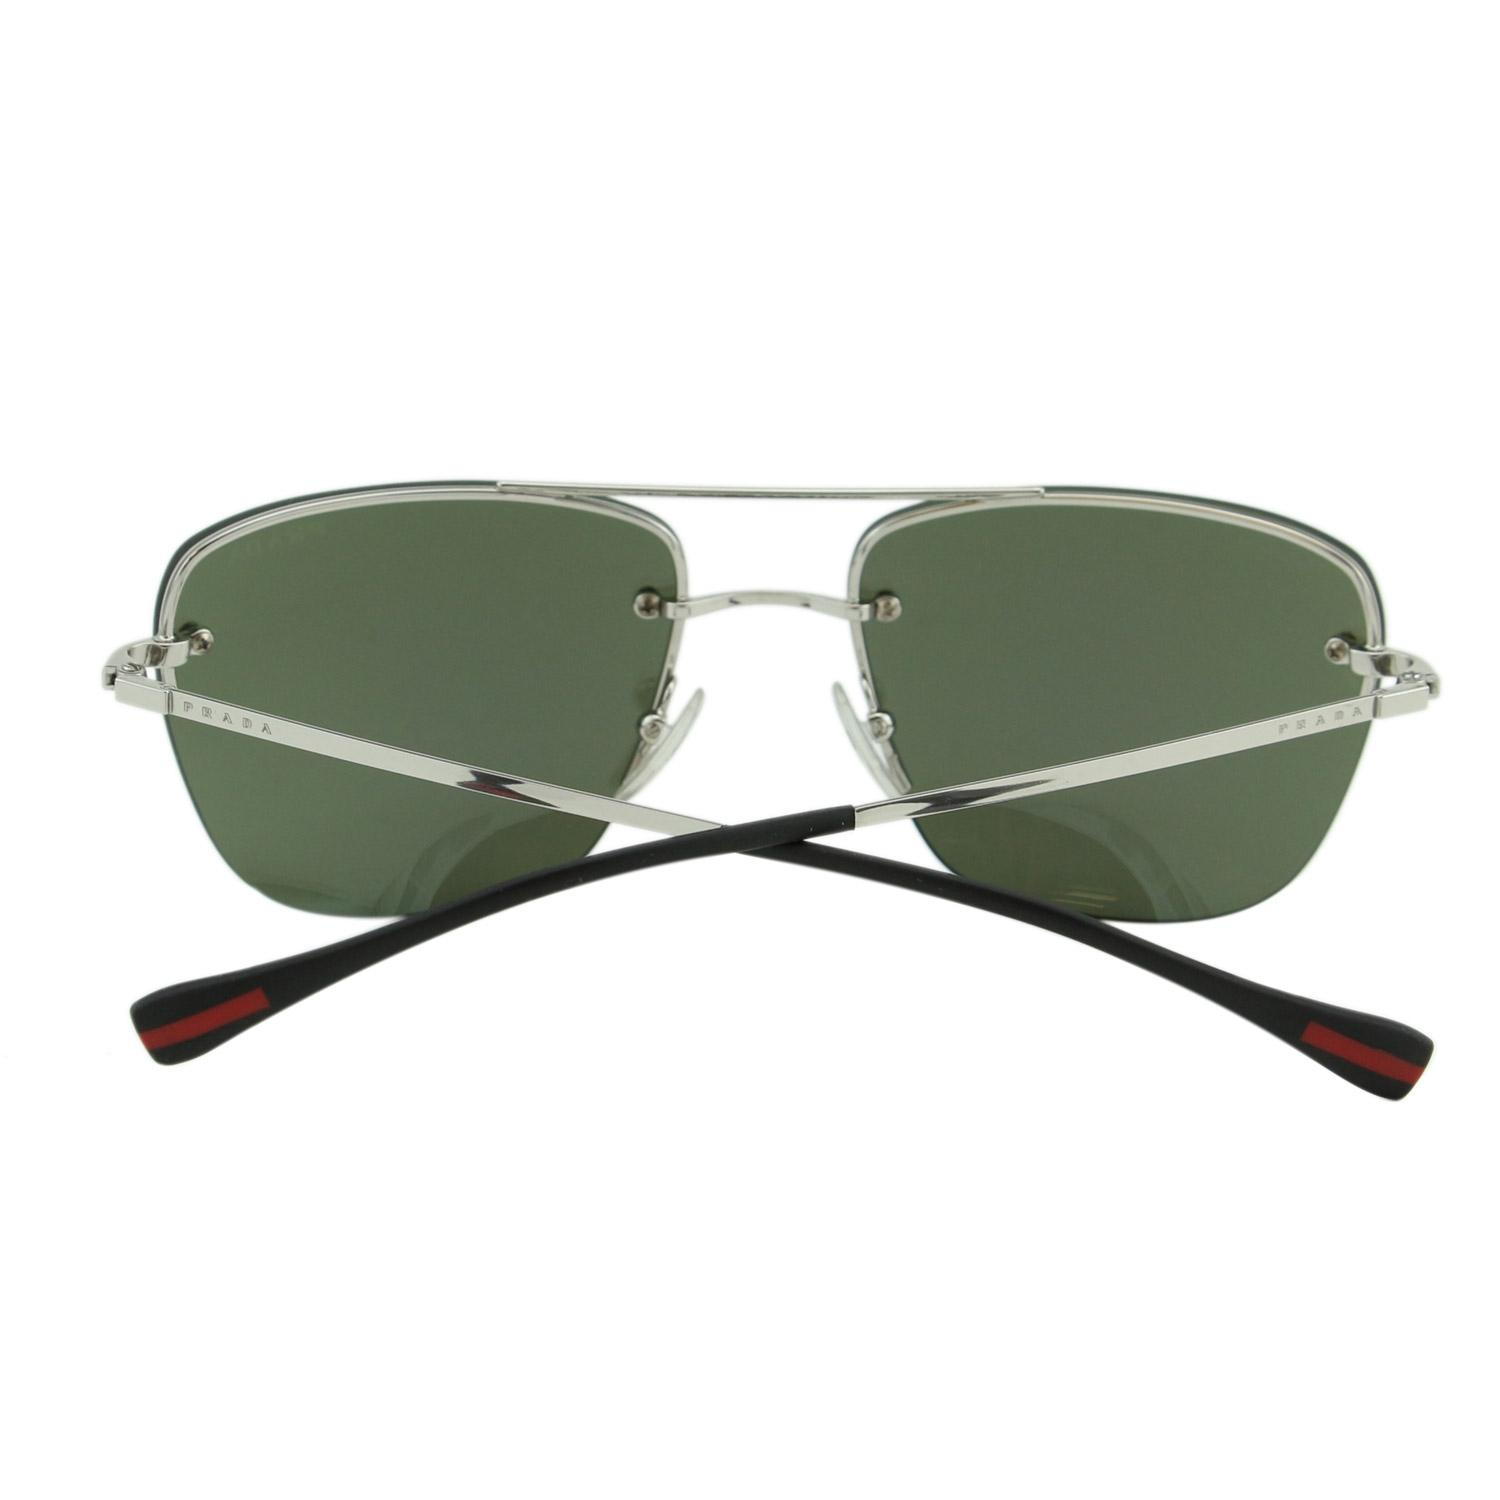 f1b8740ca22a ... best prada silver black new sport ps52r 1bc 5k2 linea rossa men  mirrored rimless sunglasses 223a6